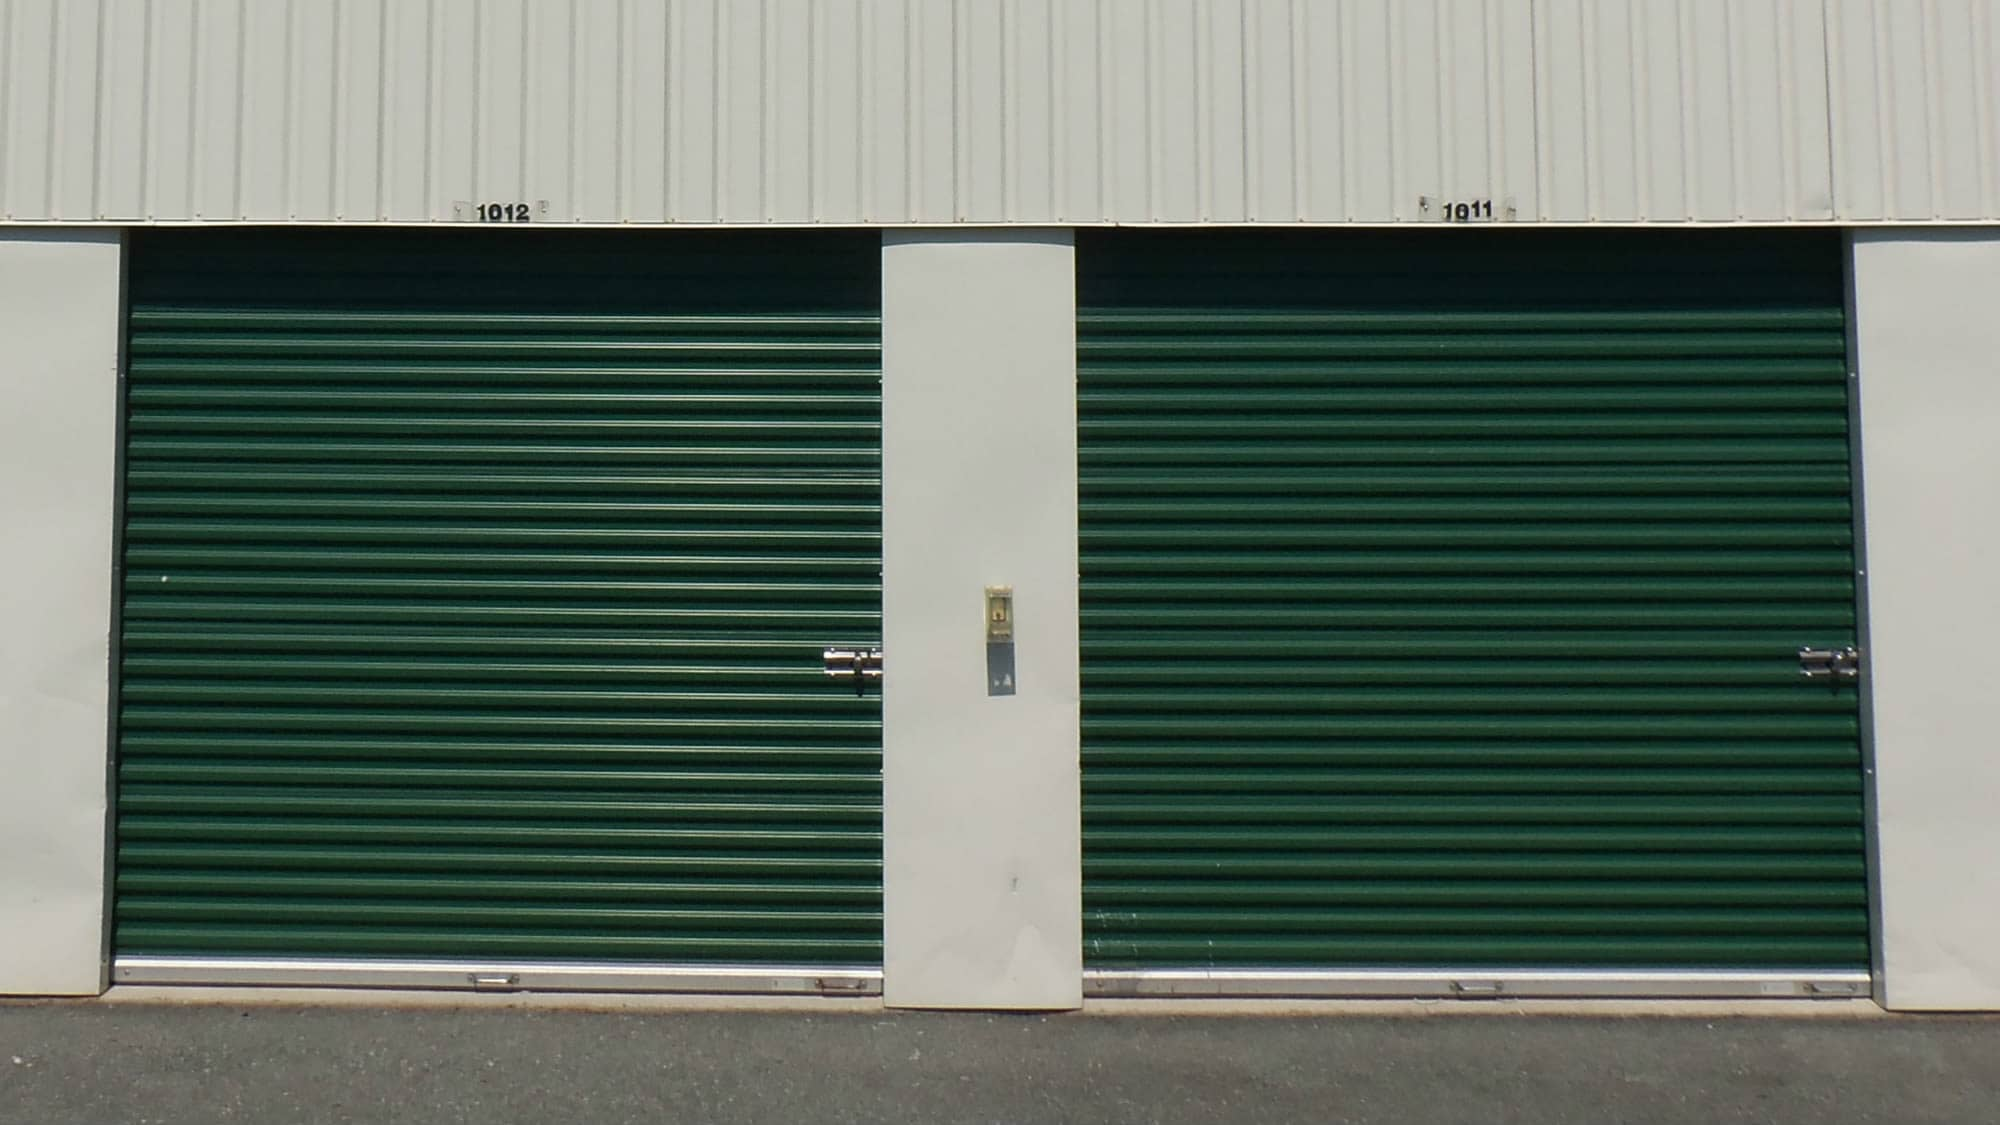 Ground-level units at Self Storage Plus in Rockville, MD